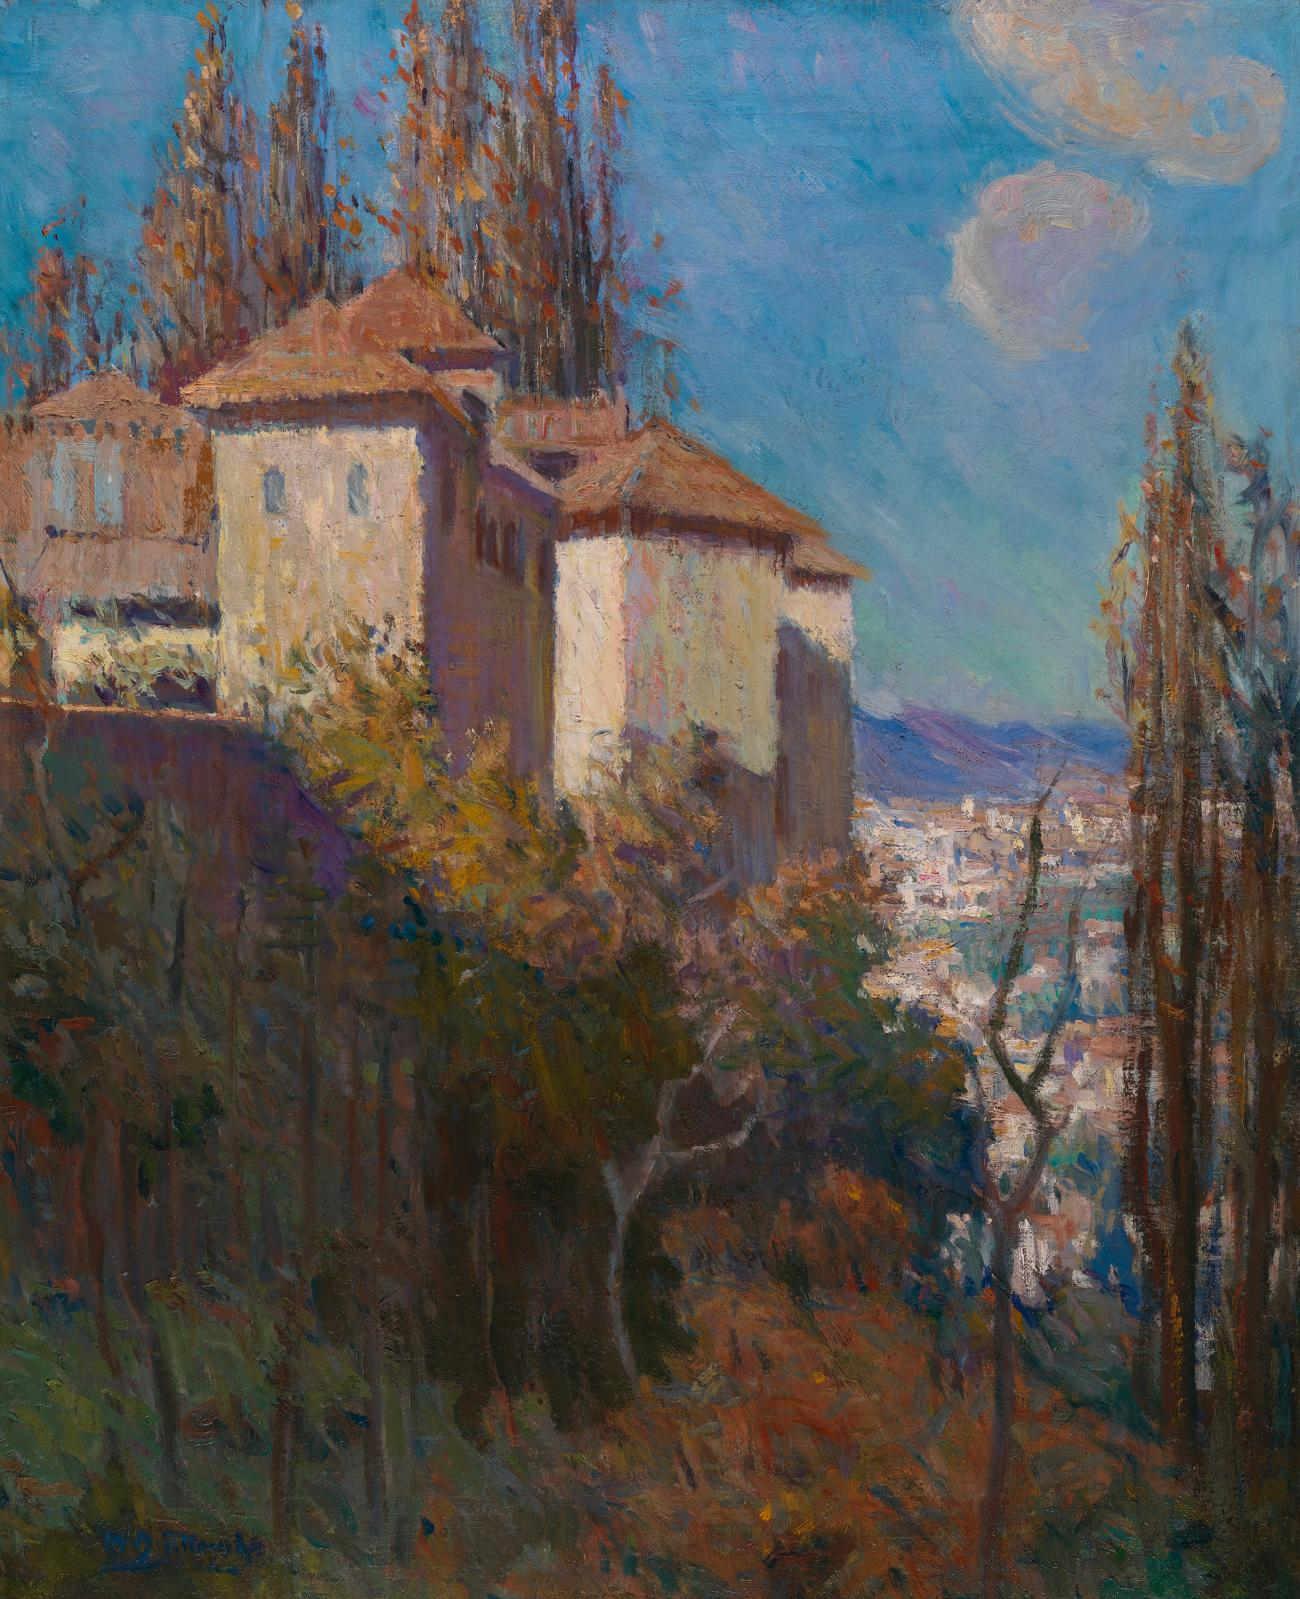 Mary Bradish Titcomb (1858–1927), The Alhambra, c. 1906, oil on canvas. Chrysler Museum of Art, Museum purchase with funds given in memory